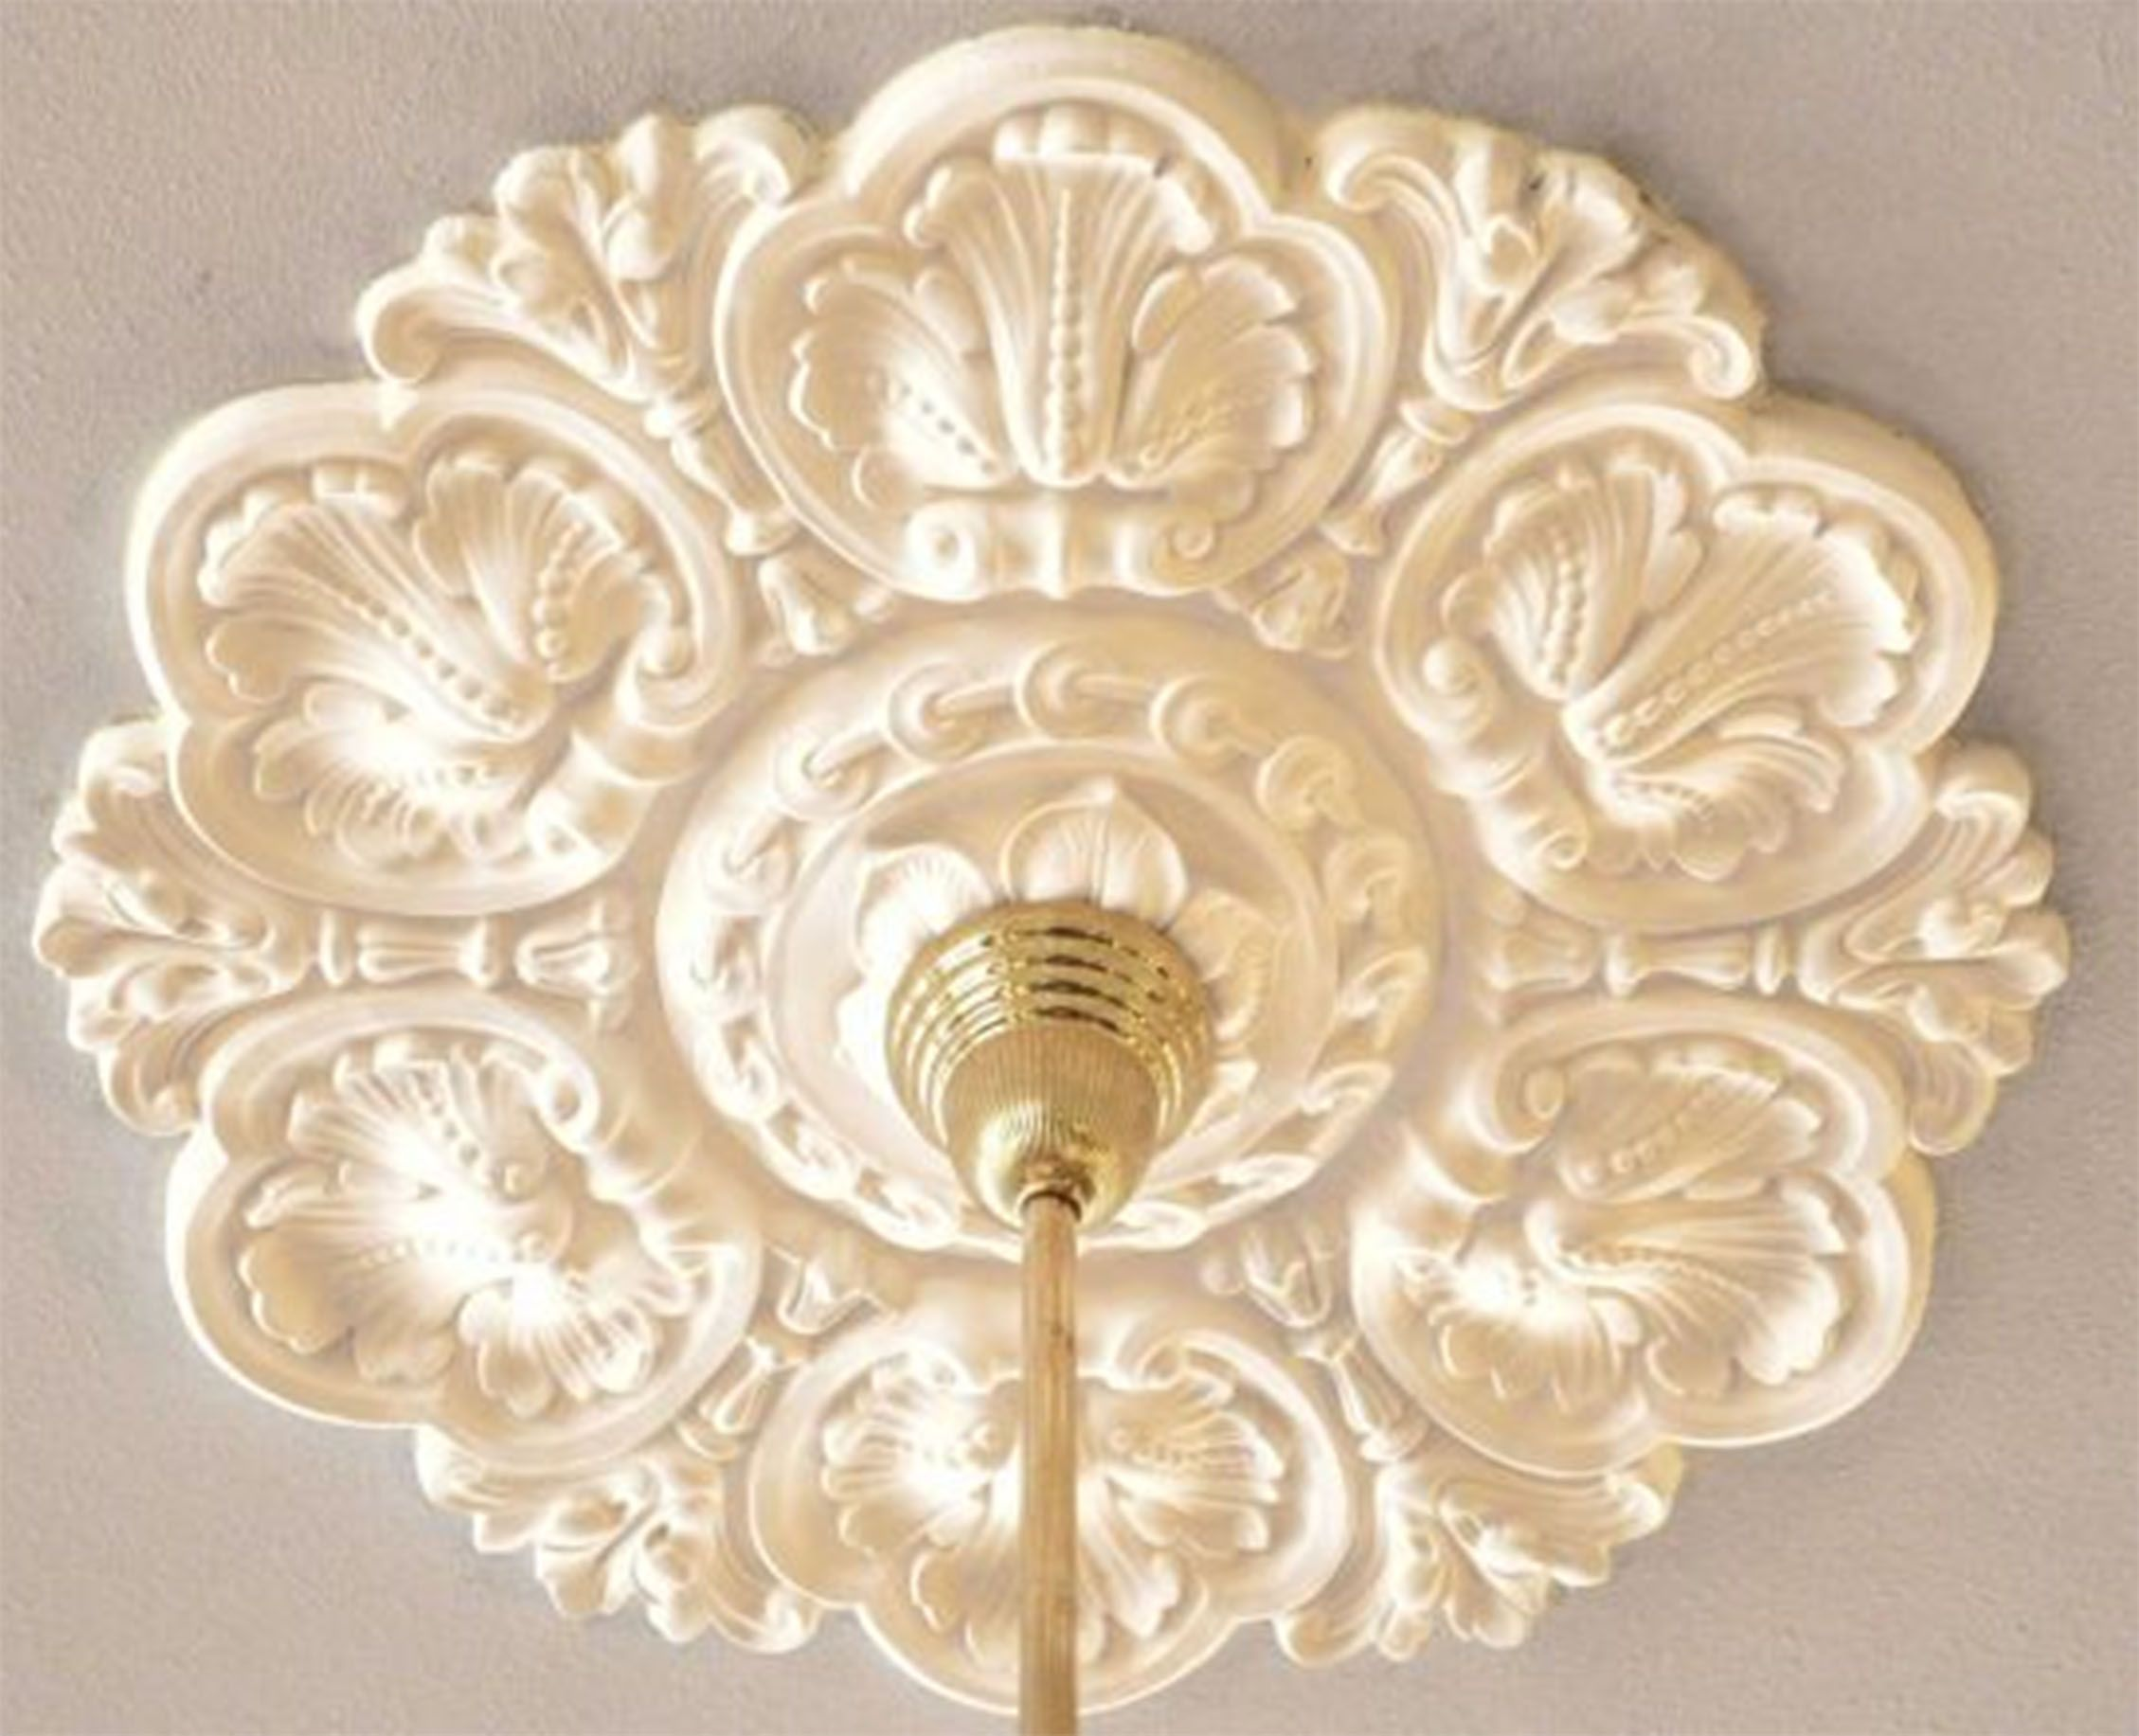 medallion light small uk fans post chandelier home of lamp rustic ceiling related shades lovely for luxury black chandeliers depot